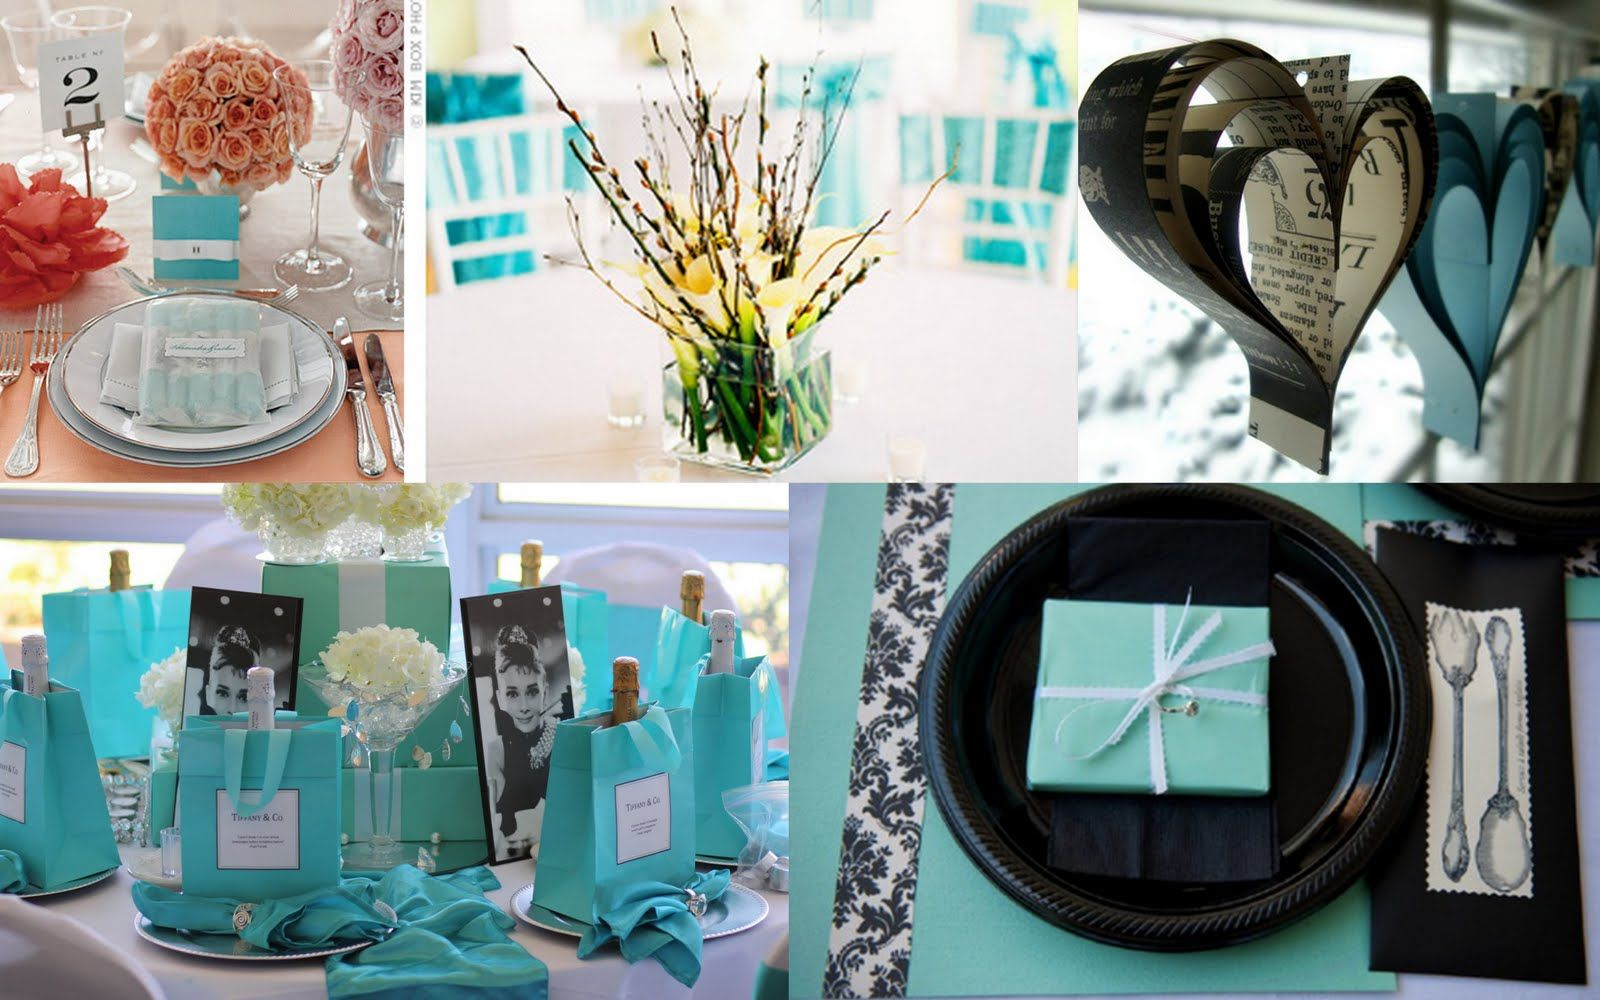 tiffany and co baby shower decorations always admire bloggers who have the art and eye for creating these